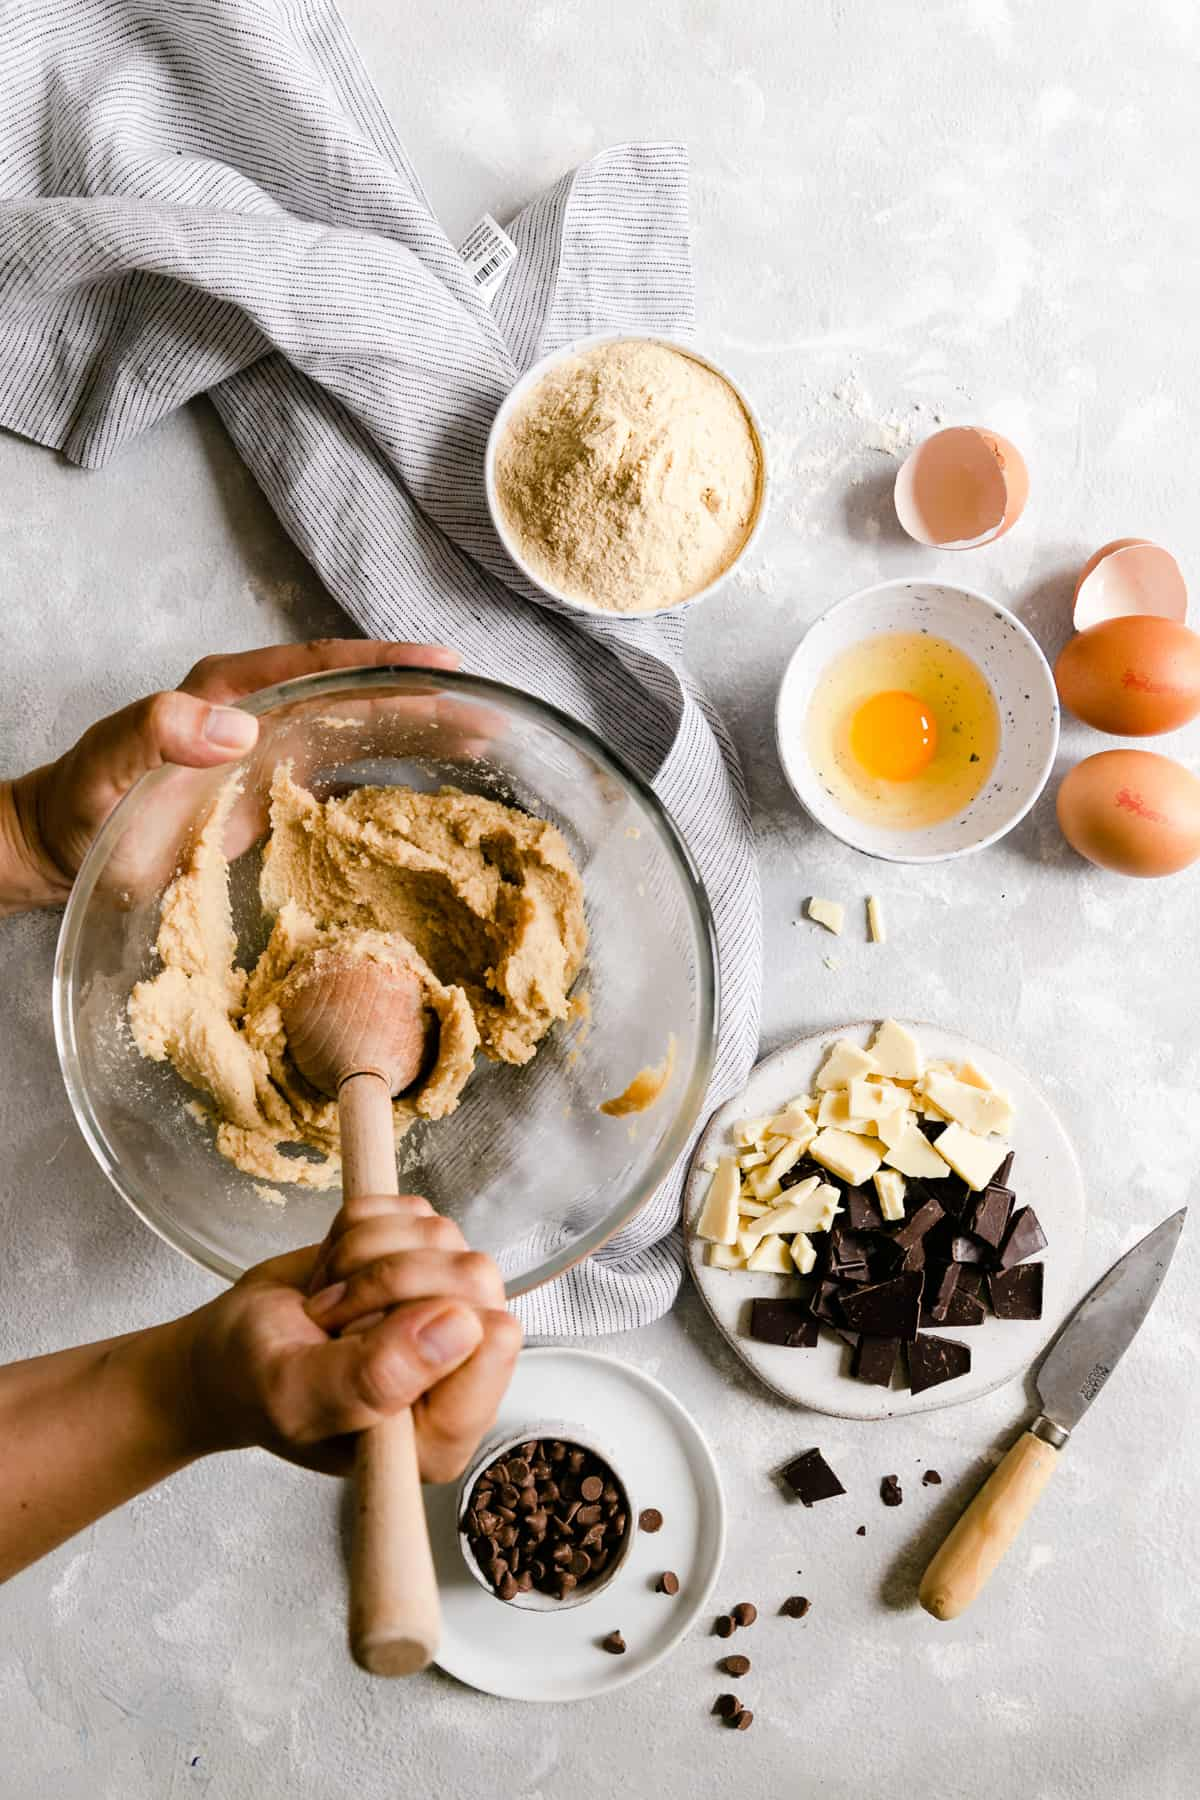 Overhead shot of a person beating butter and sugar in a large bowl